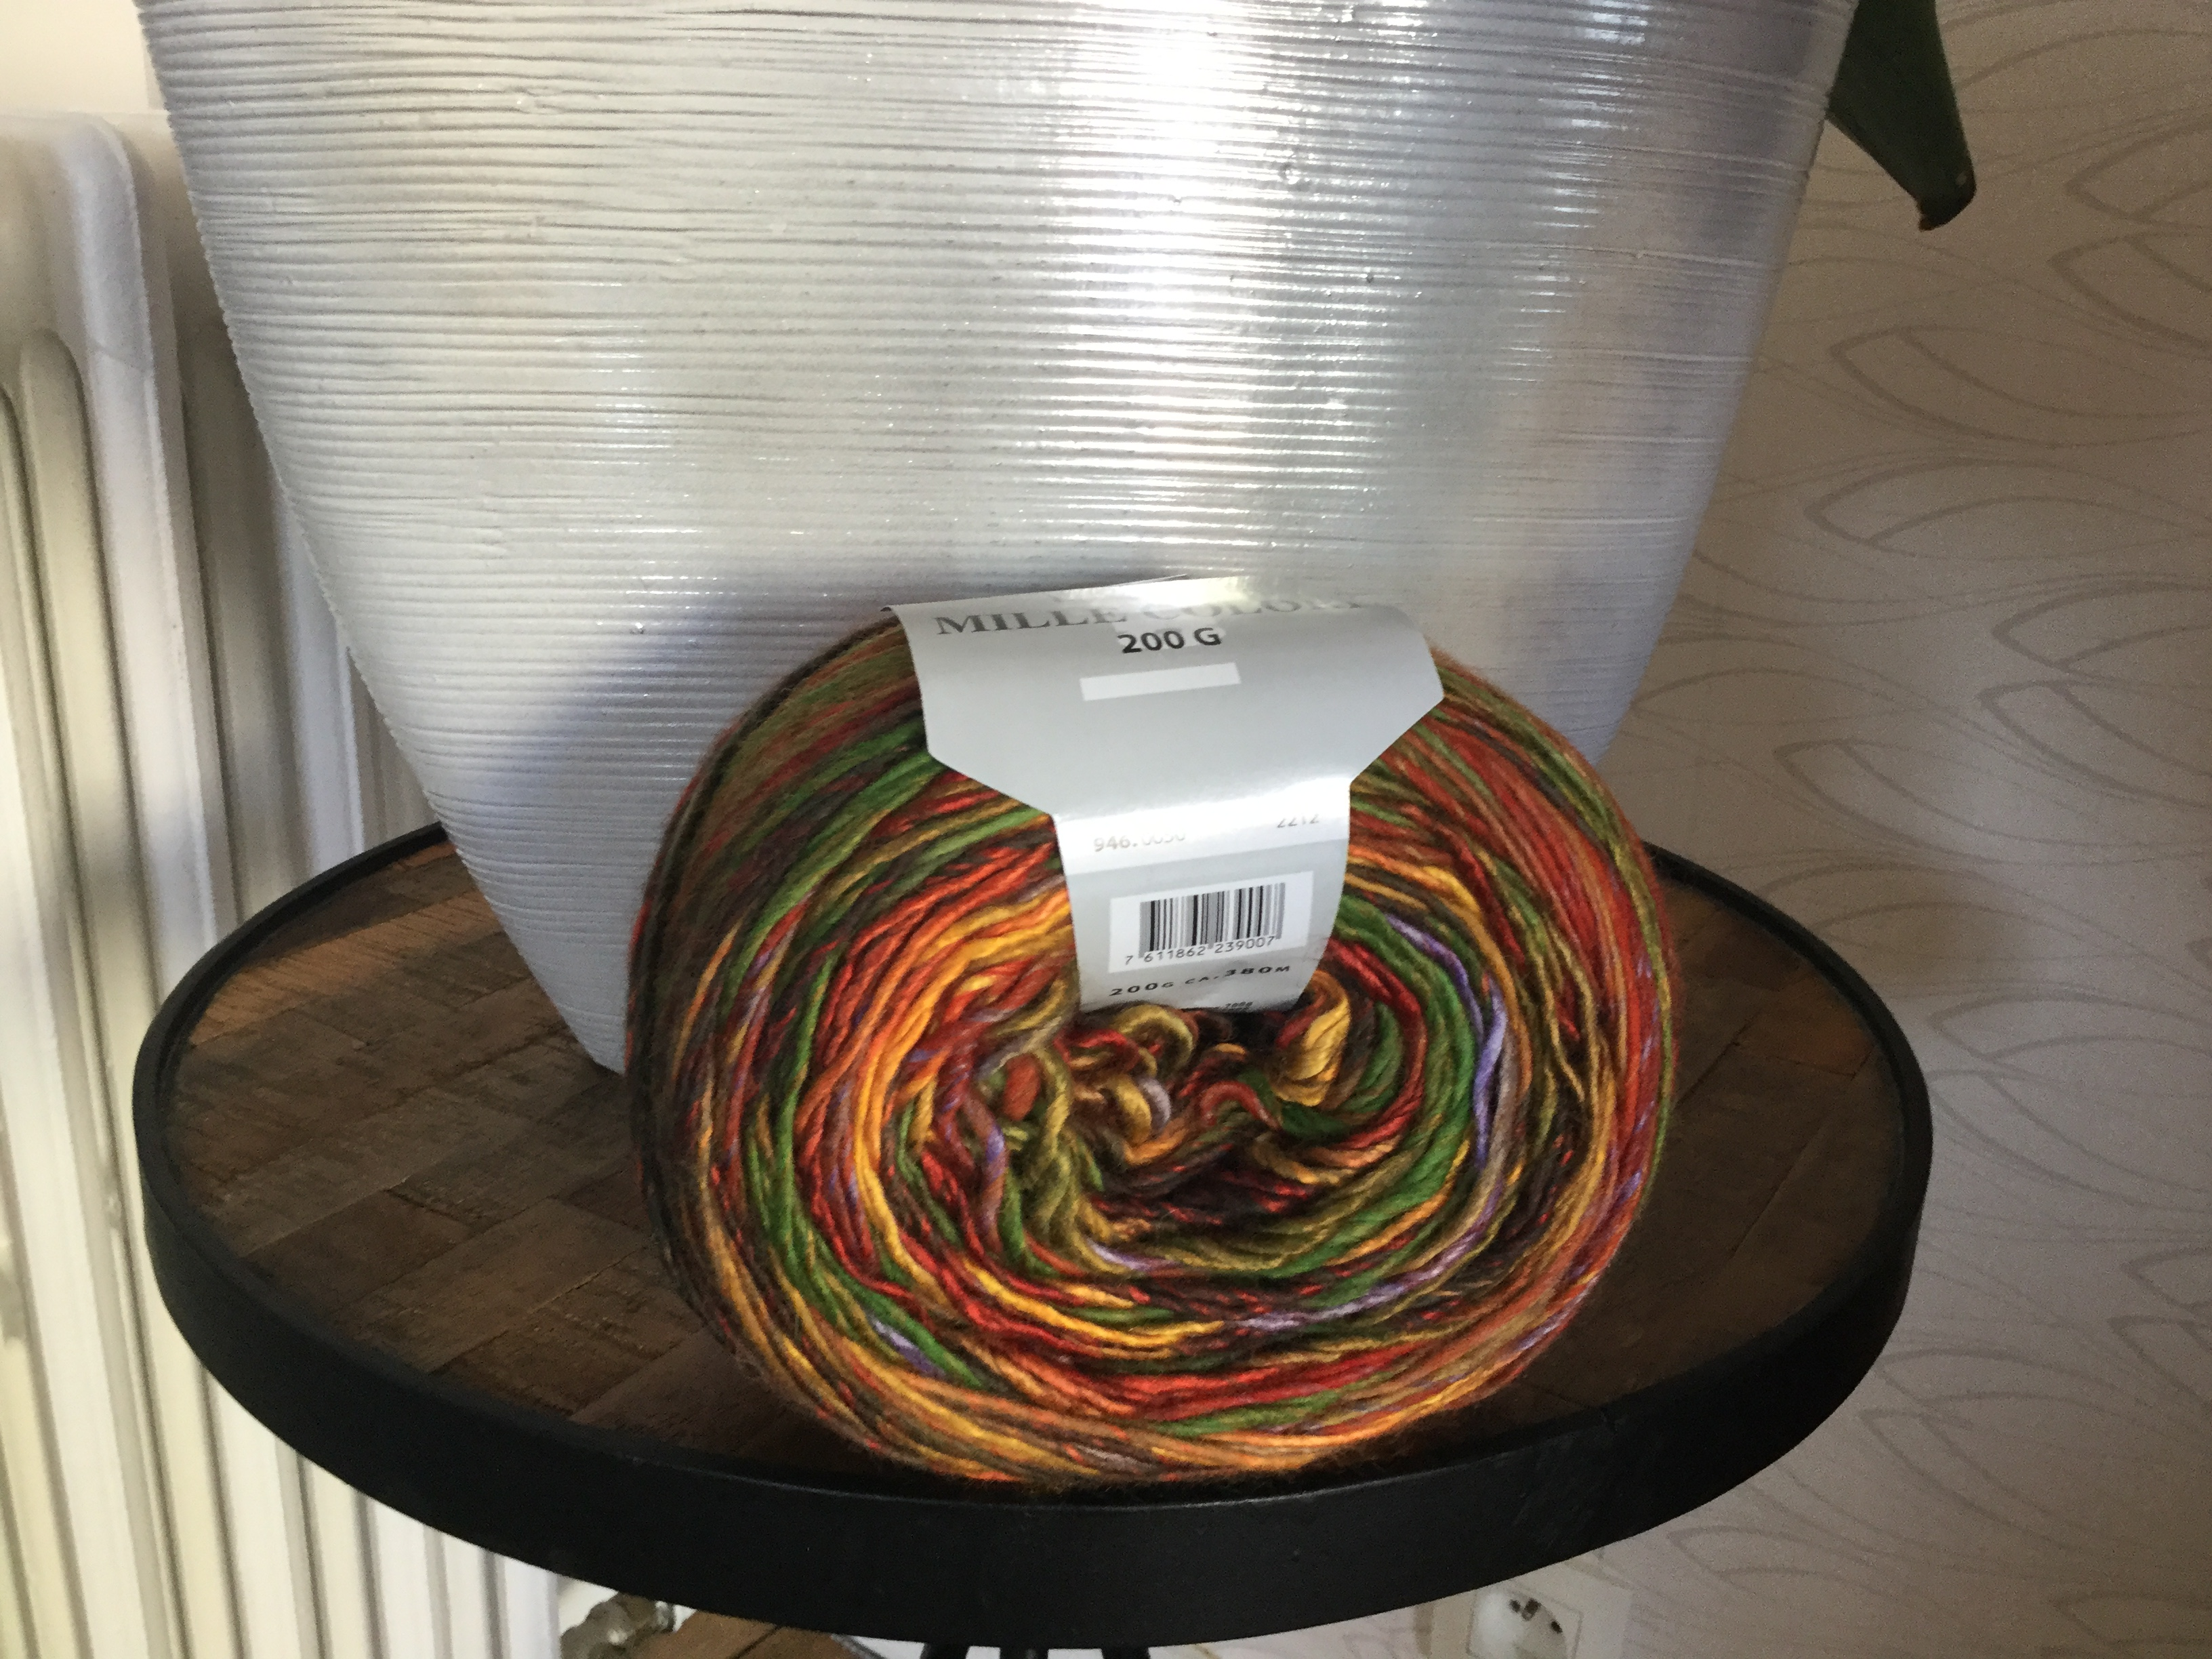 Multicoloured yarn in hues of orange, green, blue